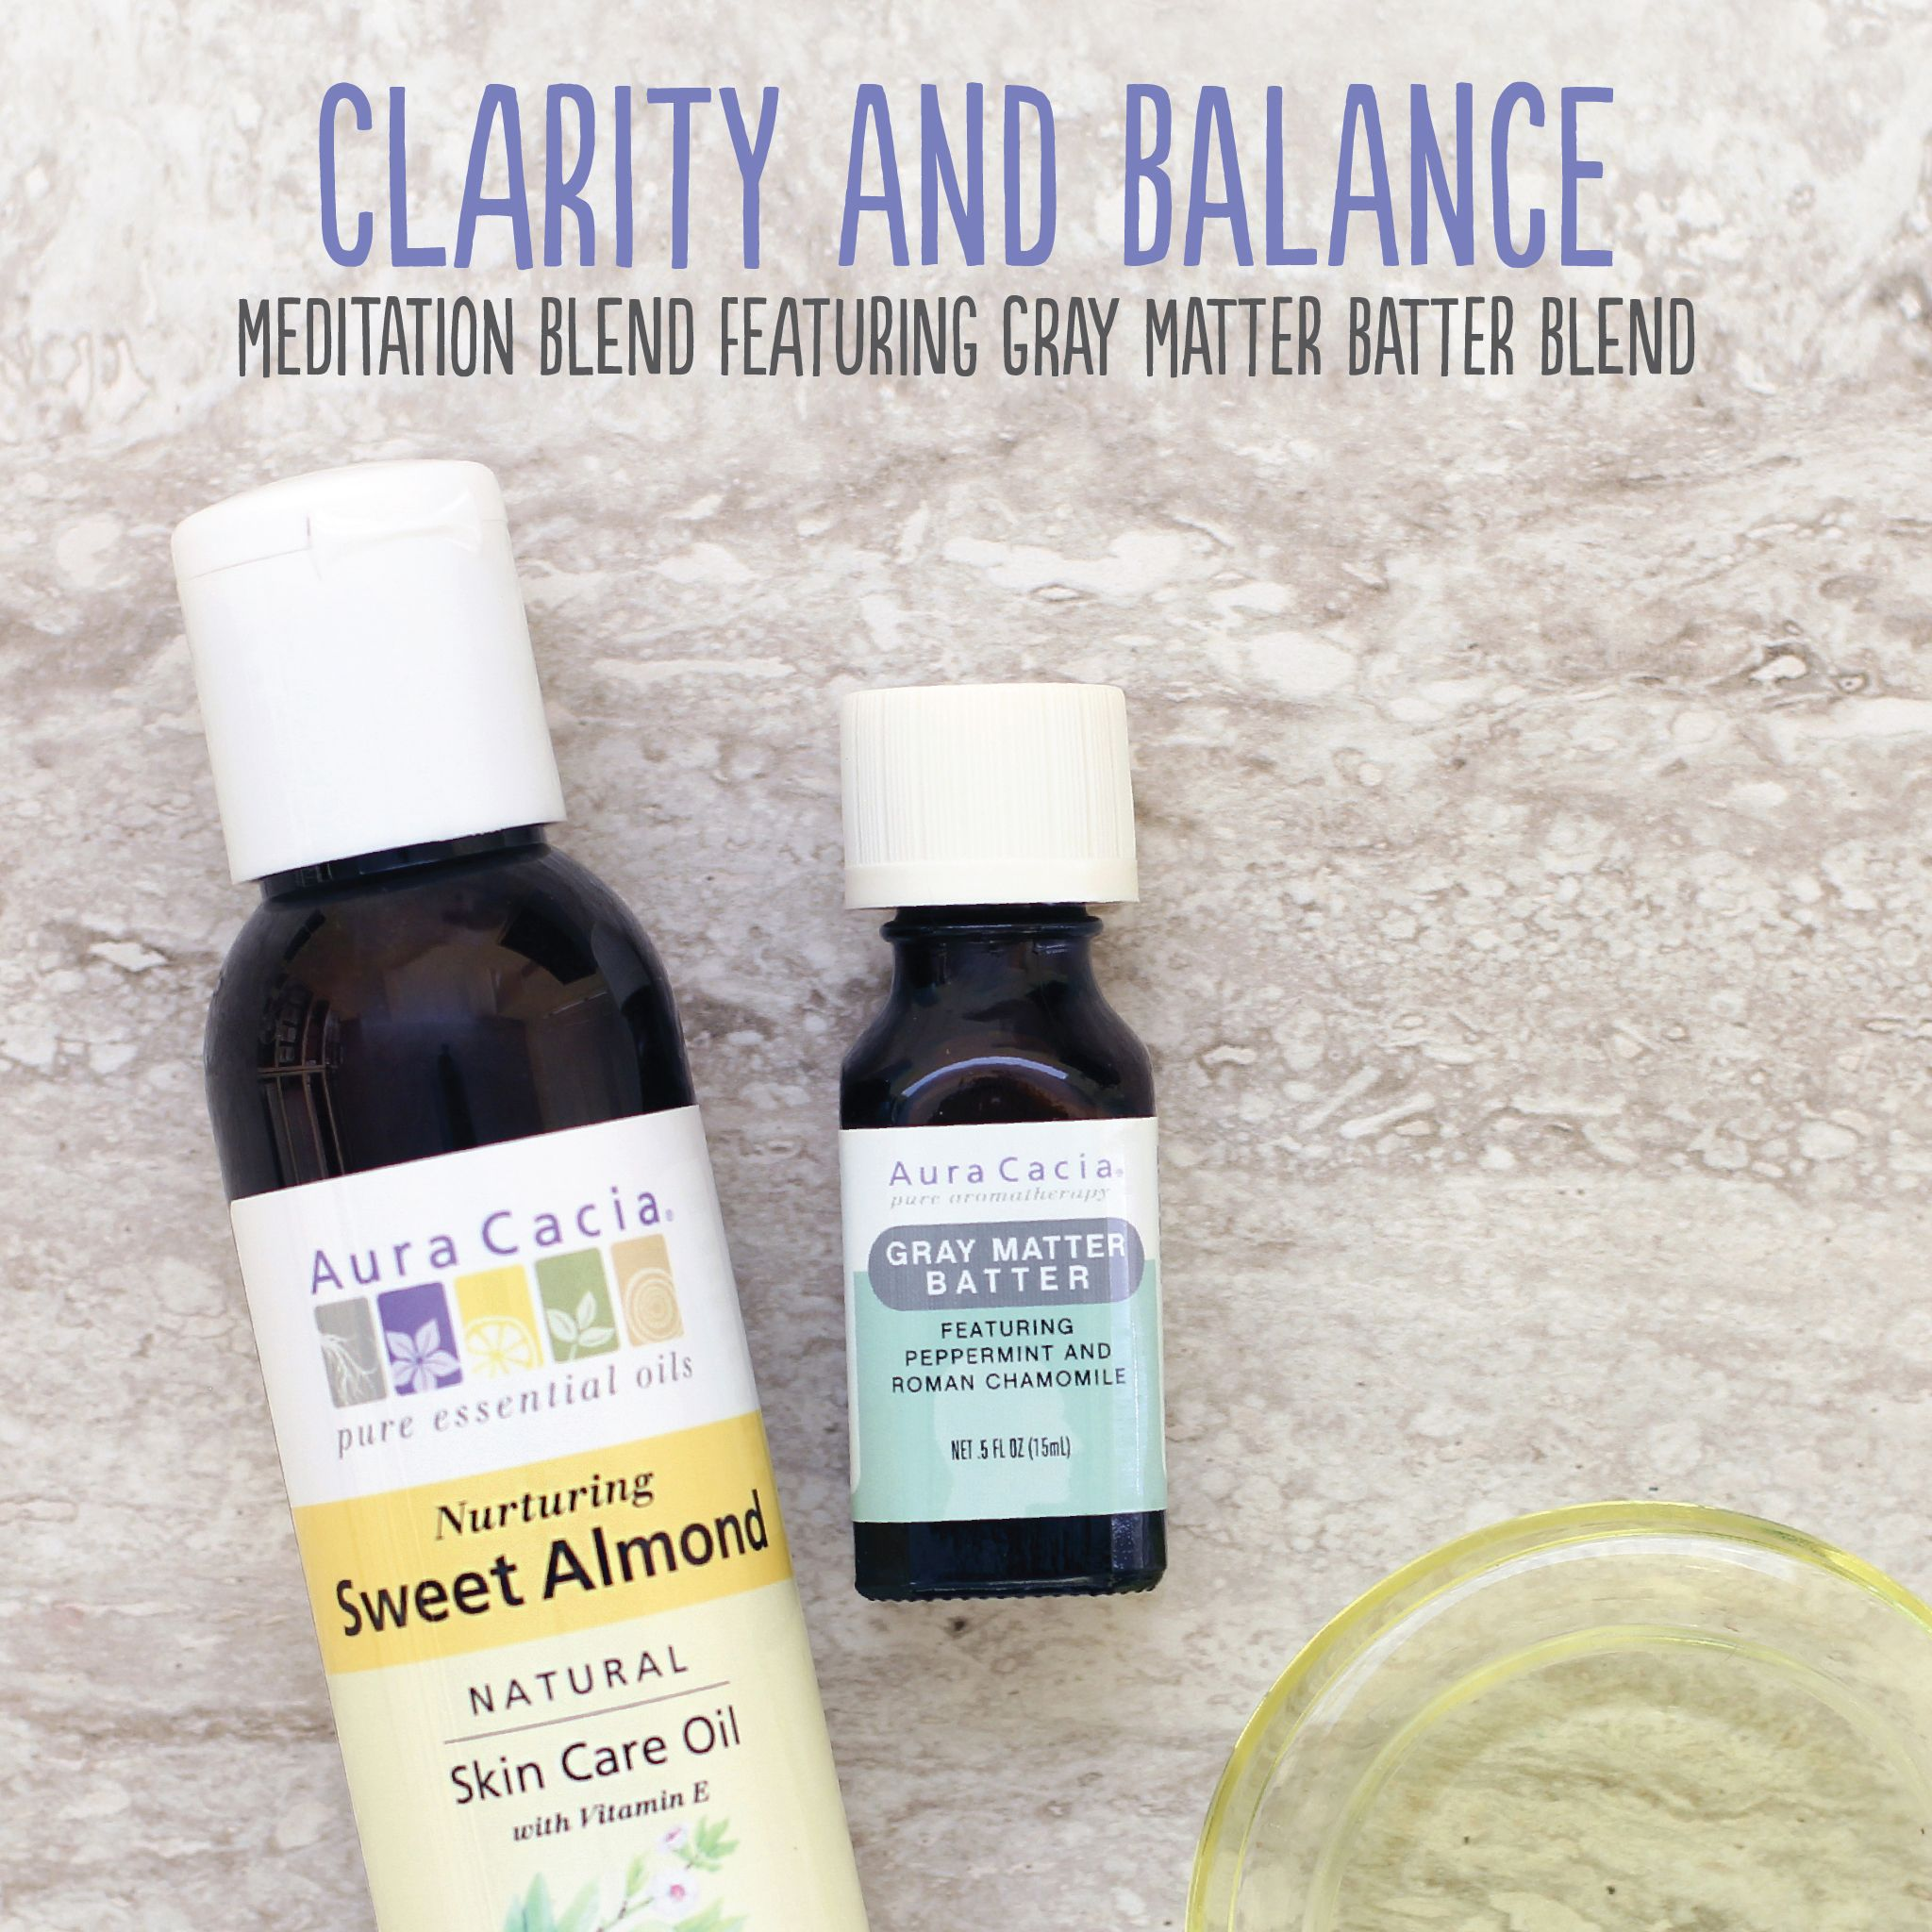 Clarity And Balance Meditation Blend Aura Cacia Aura Cacia Essential Oils Recipes Essential Oils Herbs Essential Oils Aromatherapy